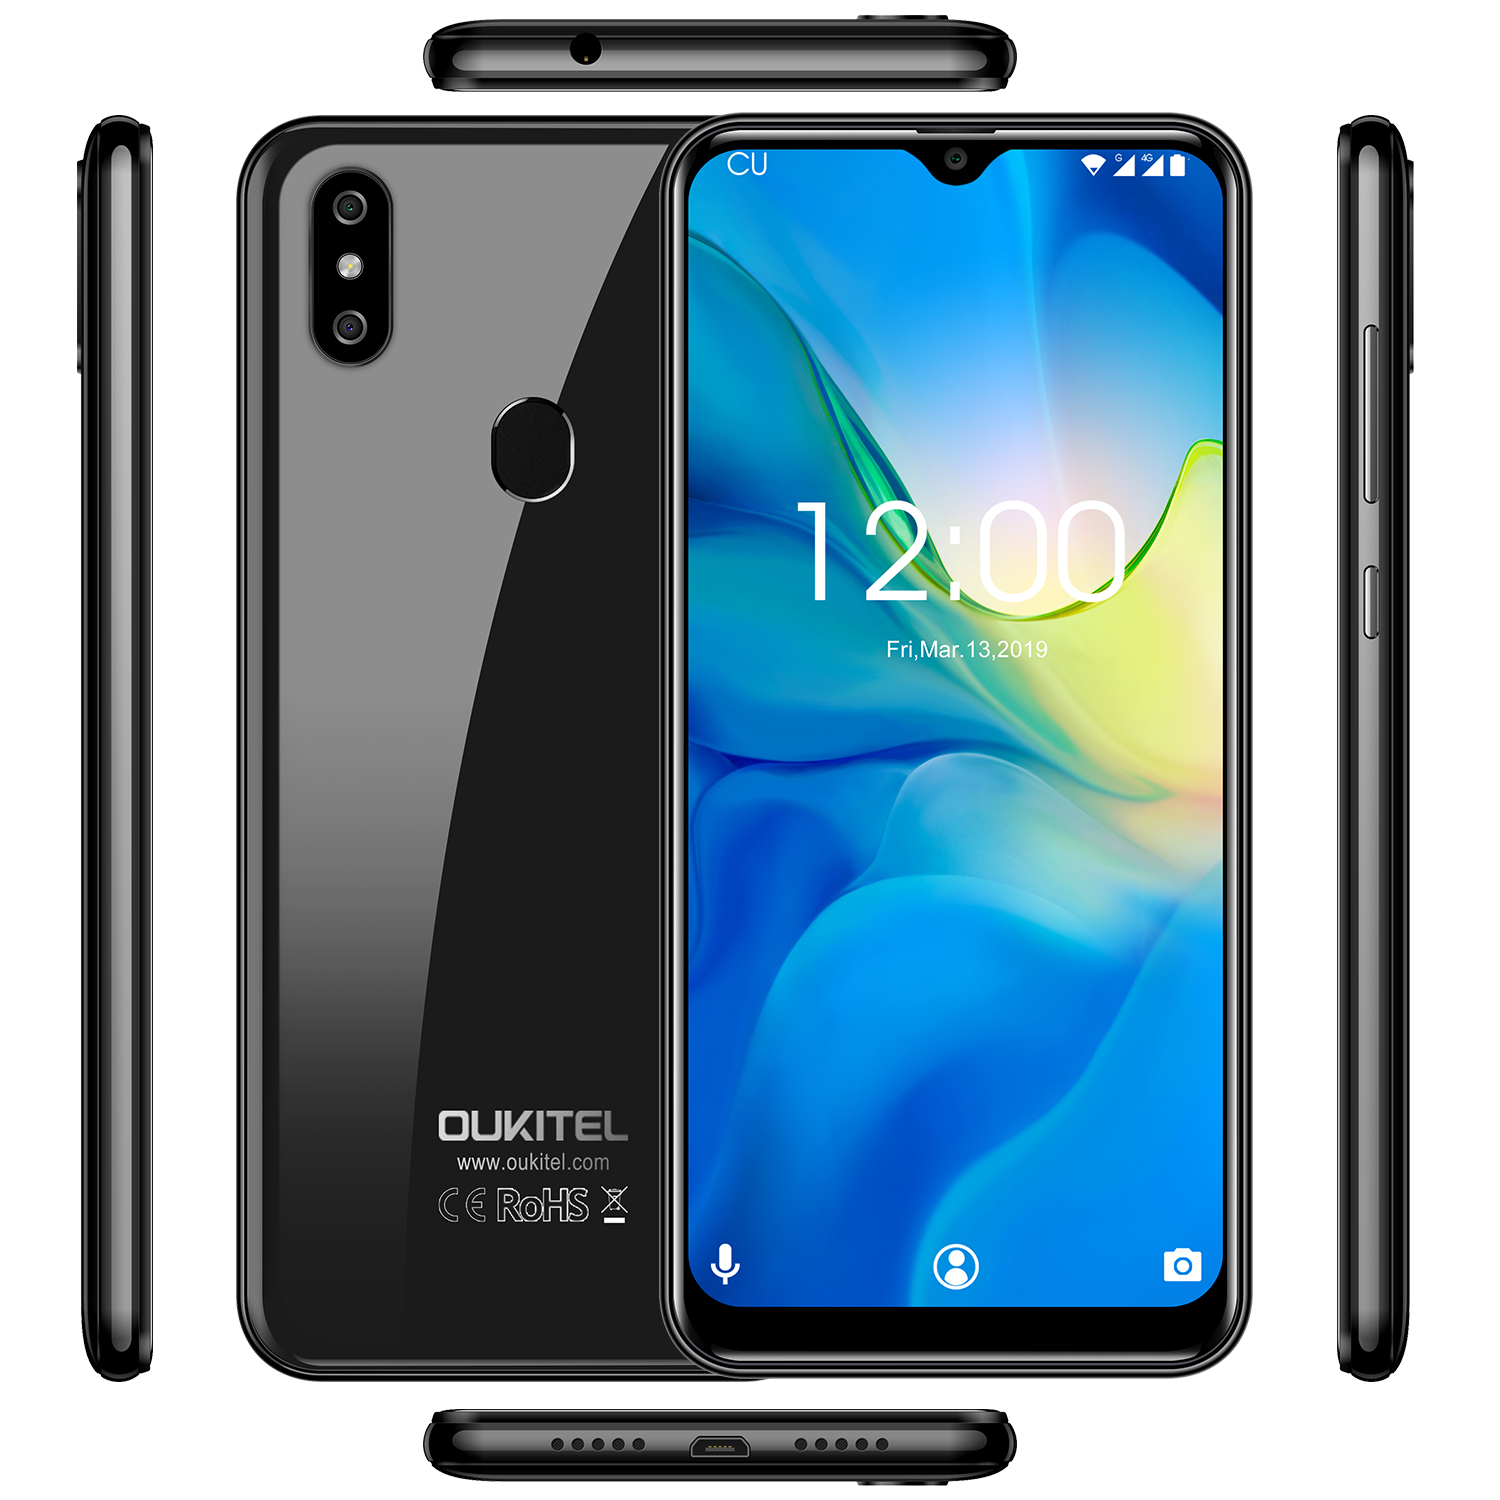 Image 5 - OUKITEL C15 Pro+ 6.088 4G Smartphone 3GB 32GB MT6761 Water Drop Screen 2.4G/5G WiFi Mobile Phone C15 Pro + Fingerprint Face ID-in Cellphones from Cellphones & Telecommunications